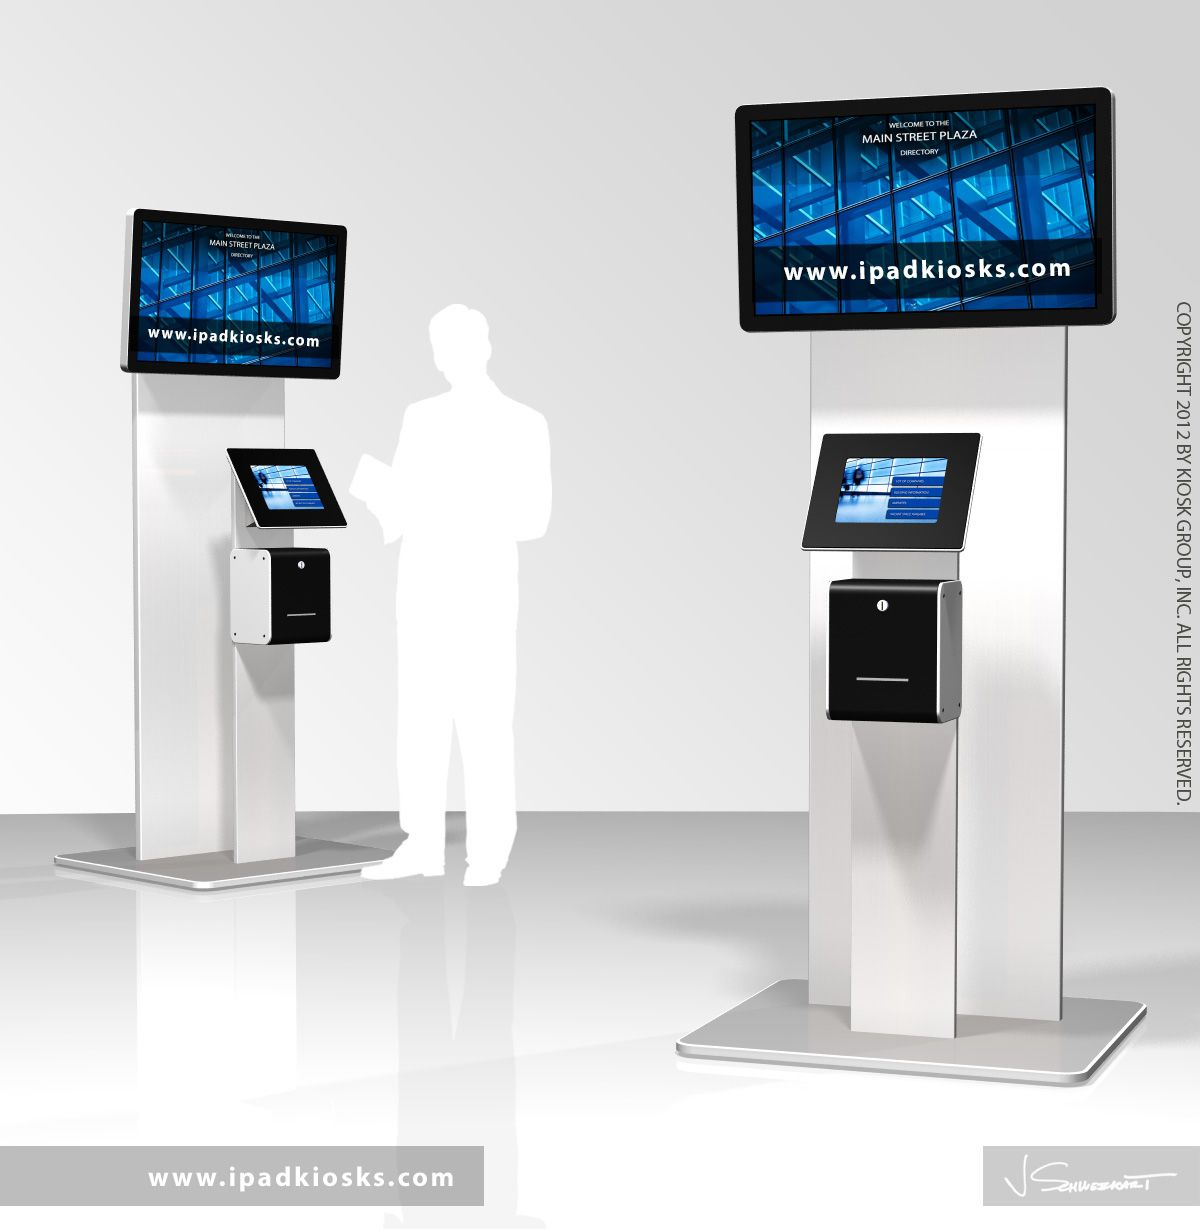 Kiosk Pro Now Offers Remote iPad Kiosk Management Software ...